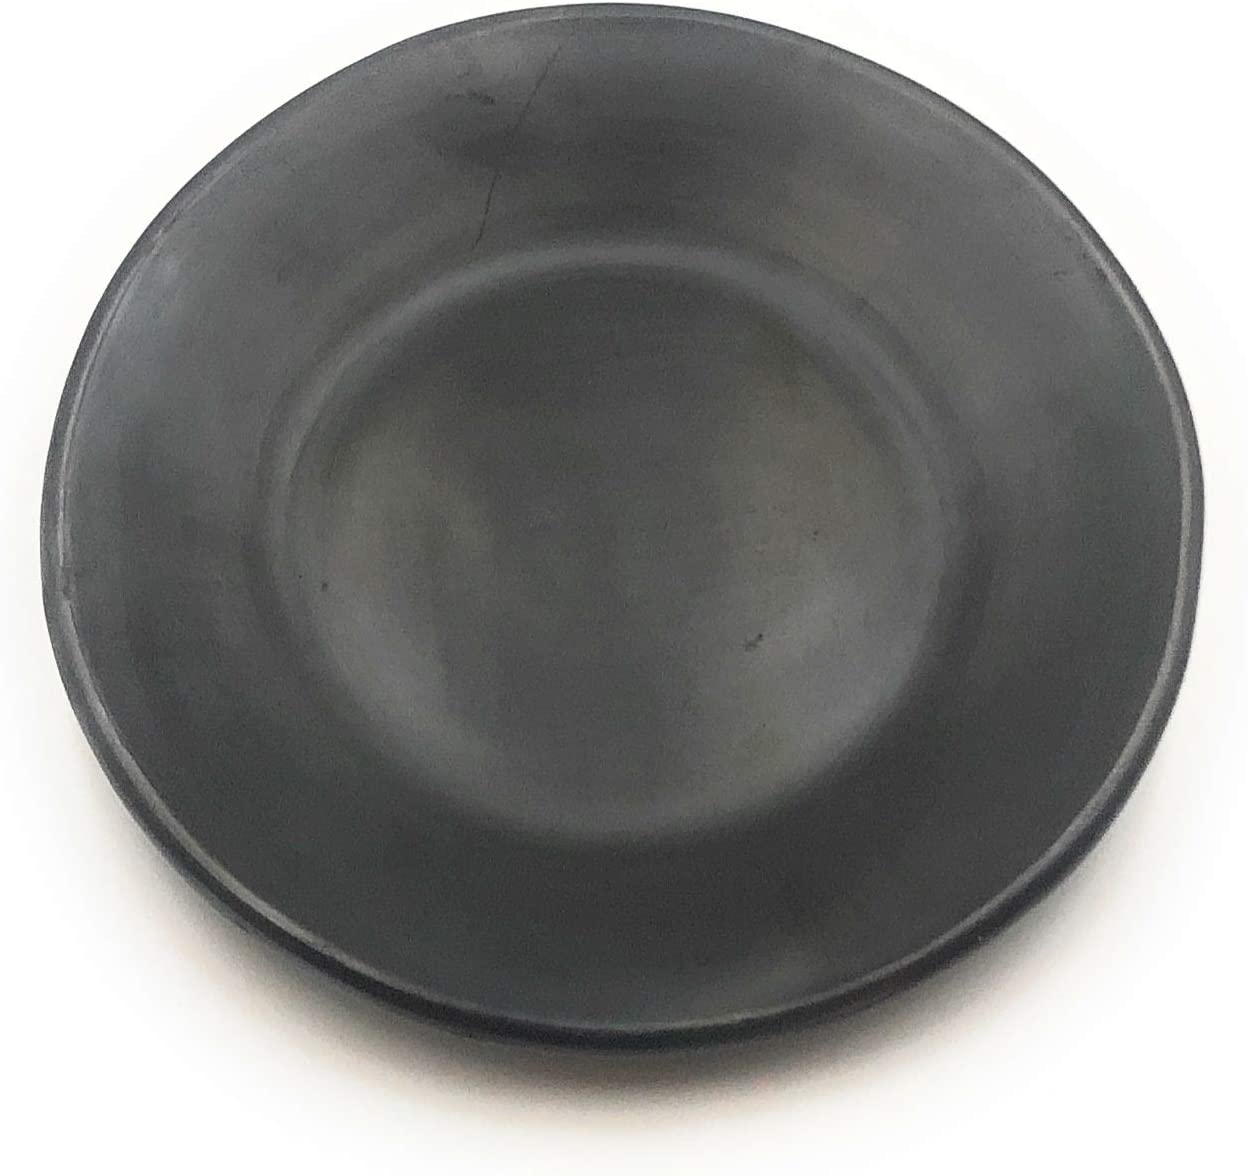 Dinner Serving Plate Black Clay 9.5